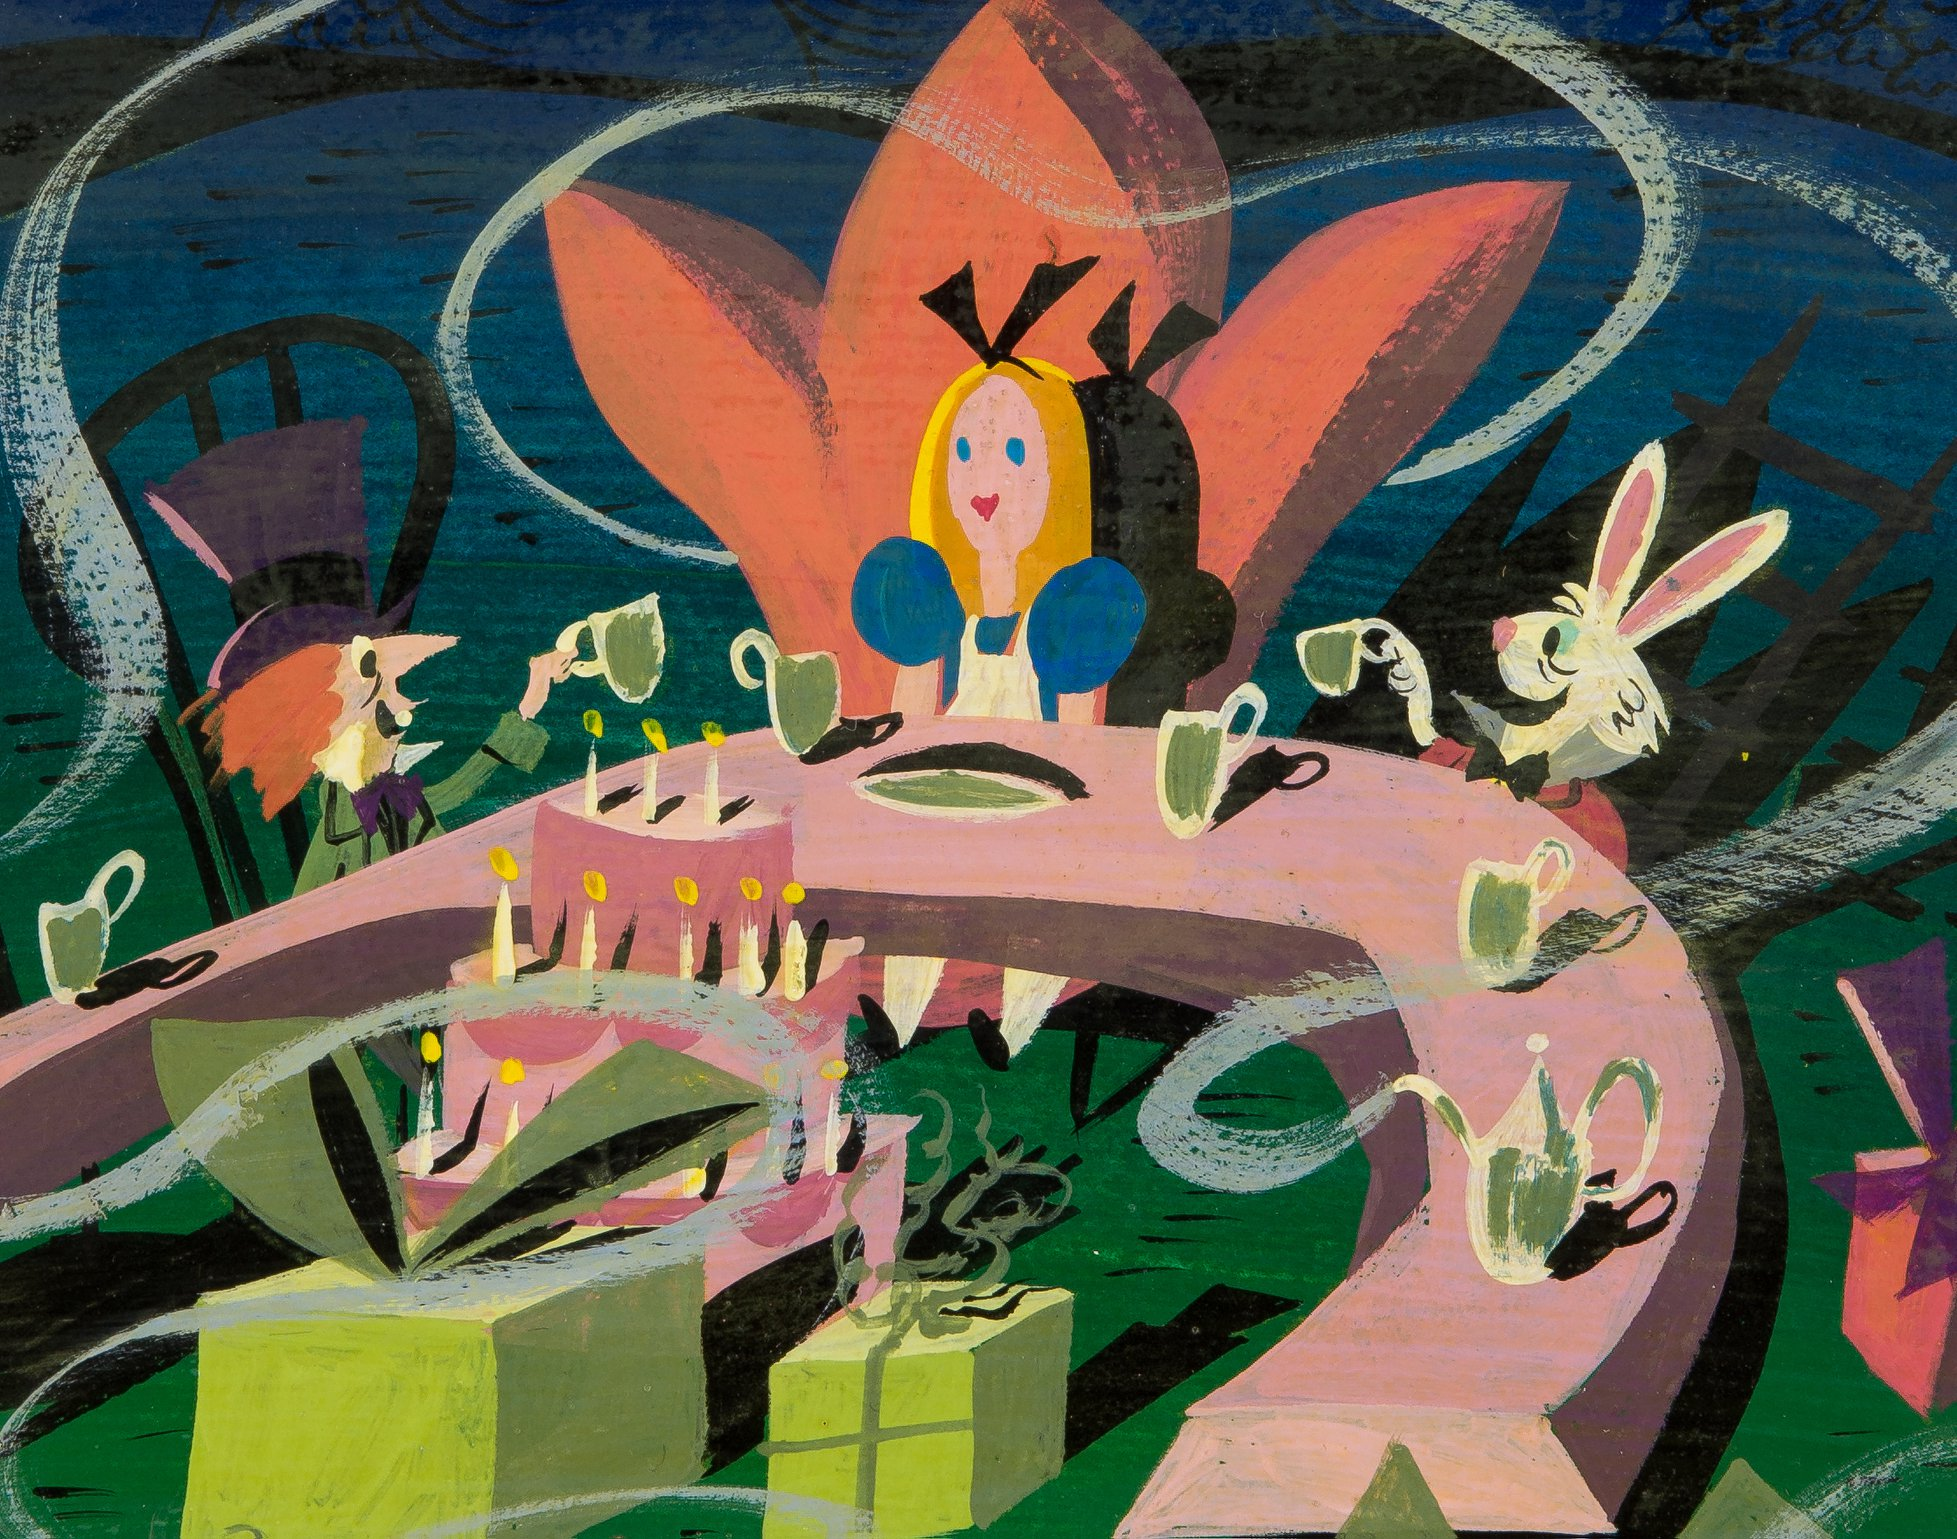 Mary Blair Alice in Wonderland concept art